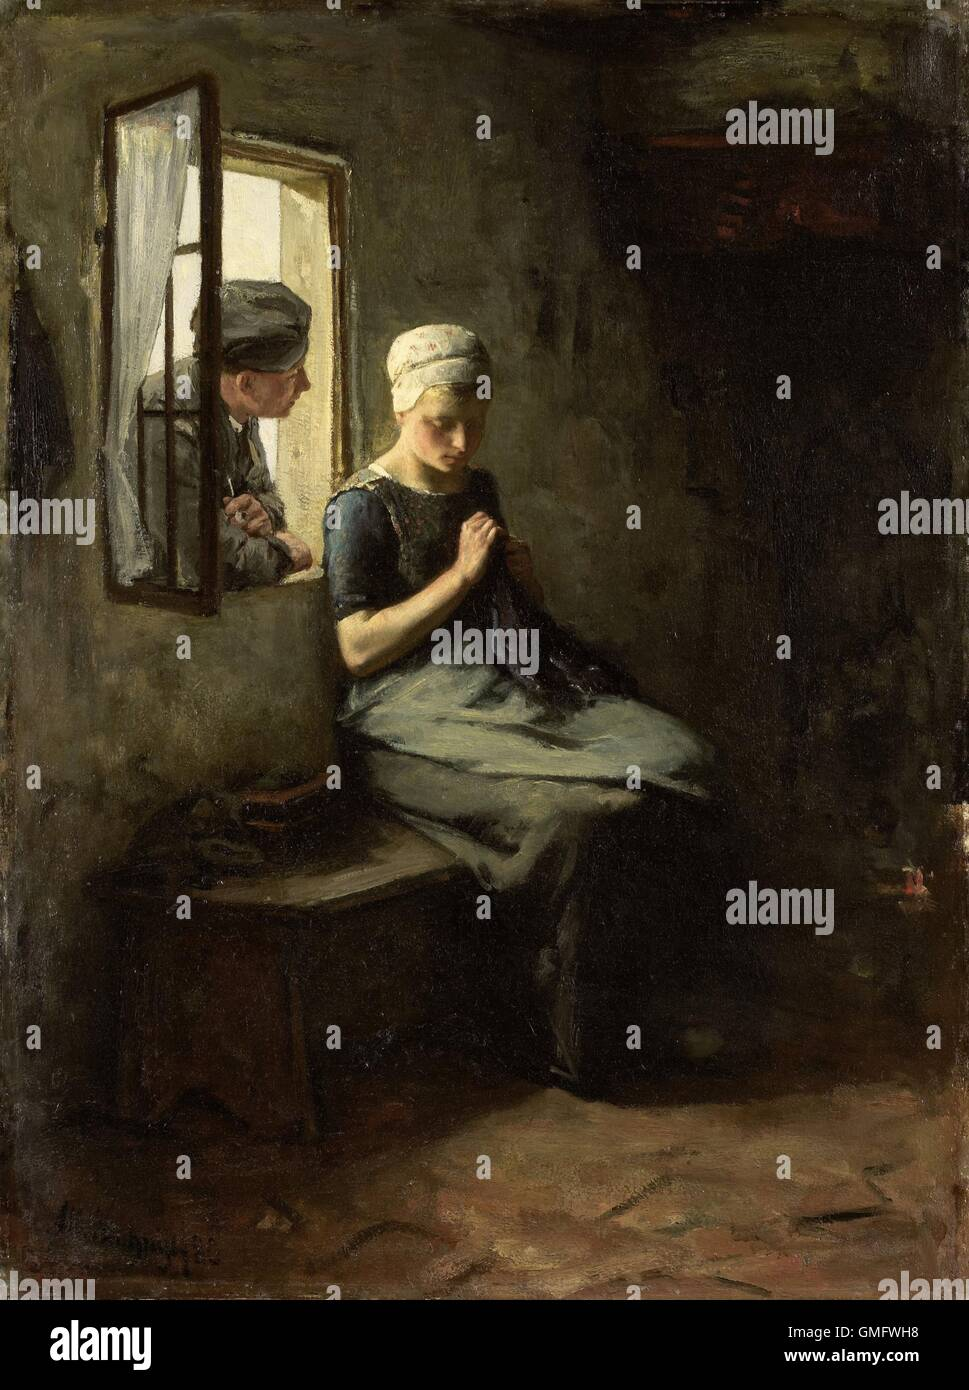 Fisherman's Courtship, by Albert Neuhuys, 1880. Dutch painting, oil on canvas. A young man leaning in a window - Stock Image